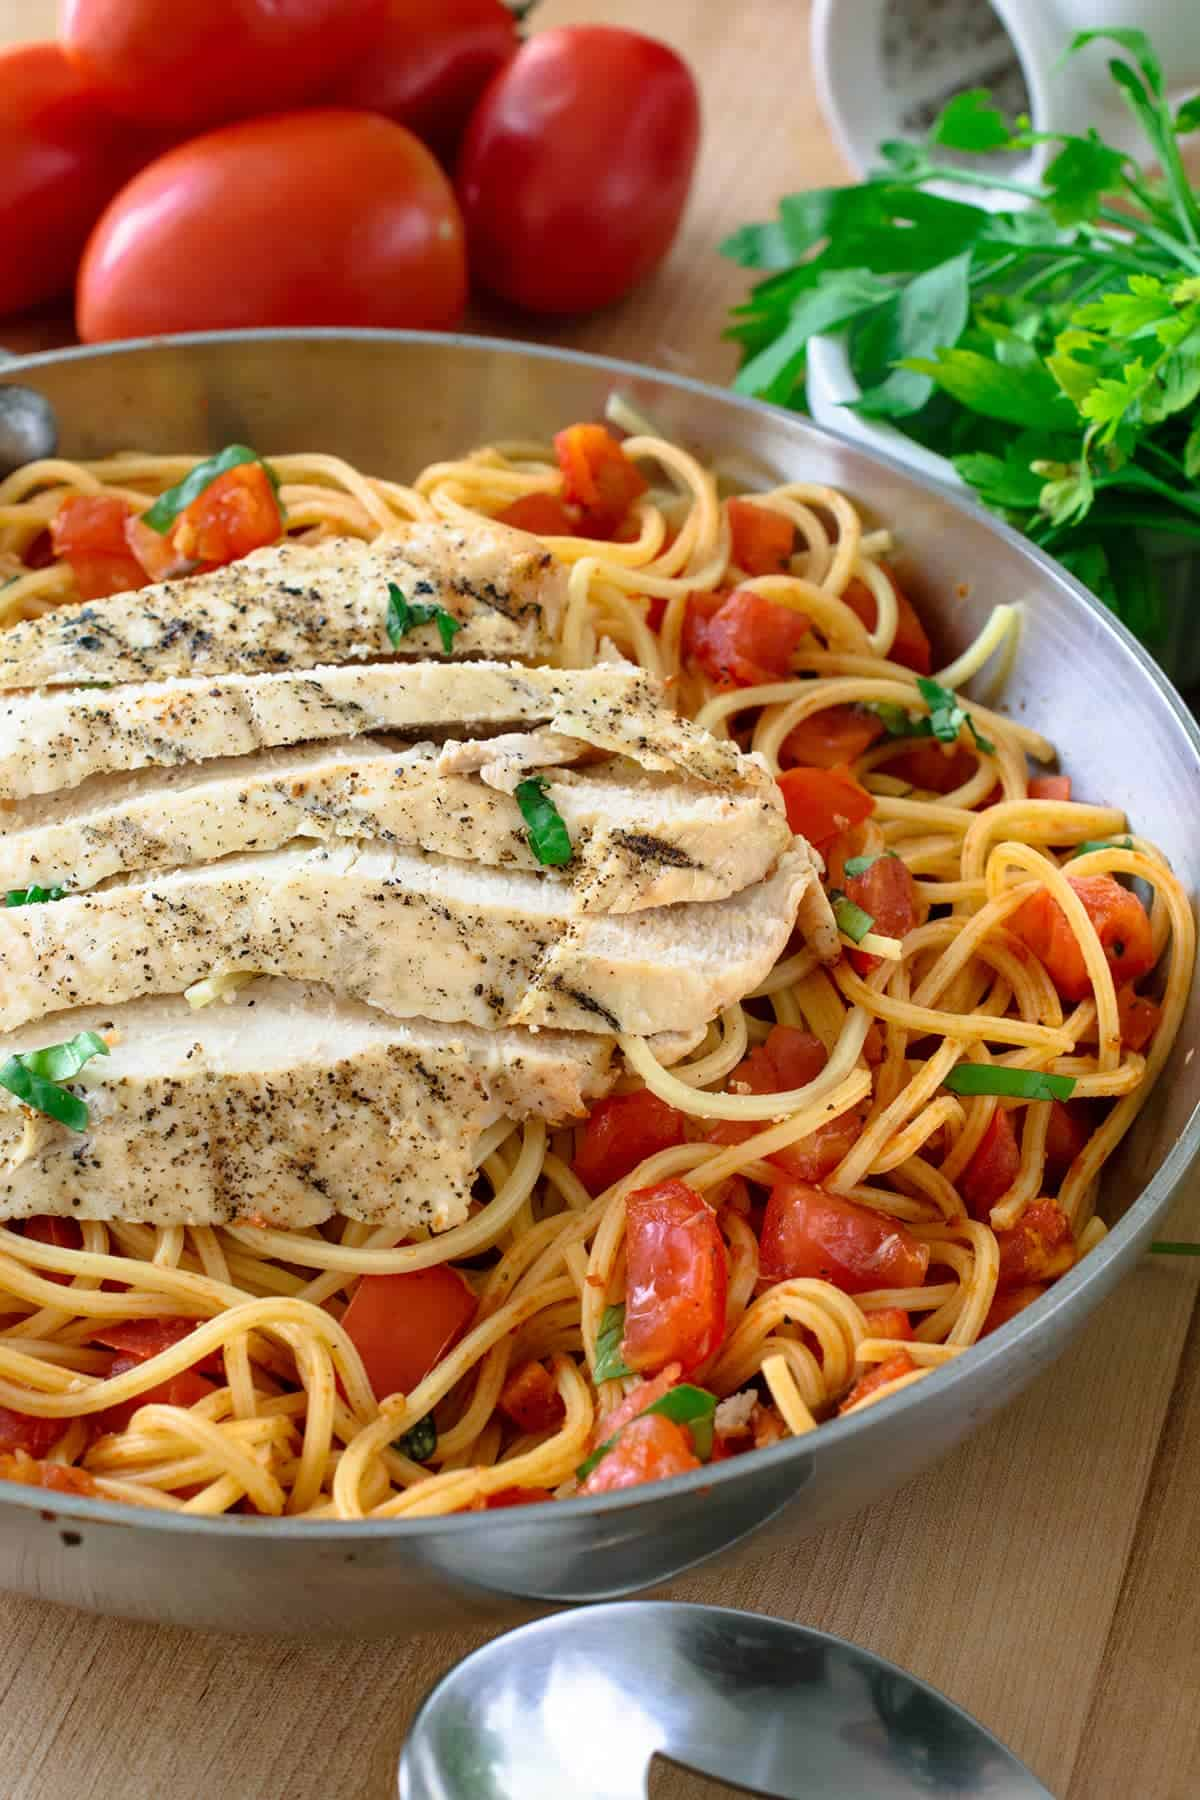 Bruschetta Chicken Pasta with tomato and basil, grilled seasoned chicken sliced on top in silver bowl